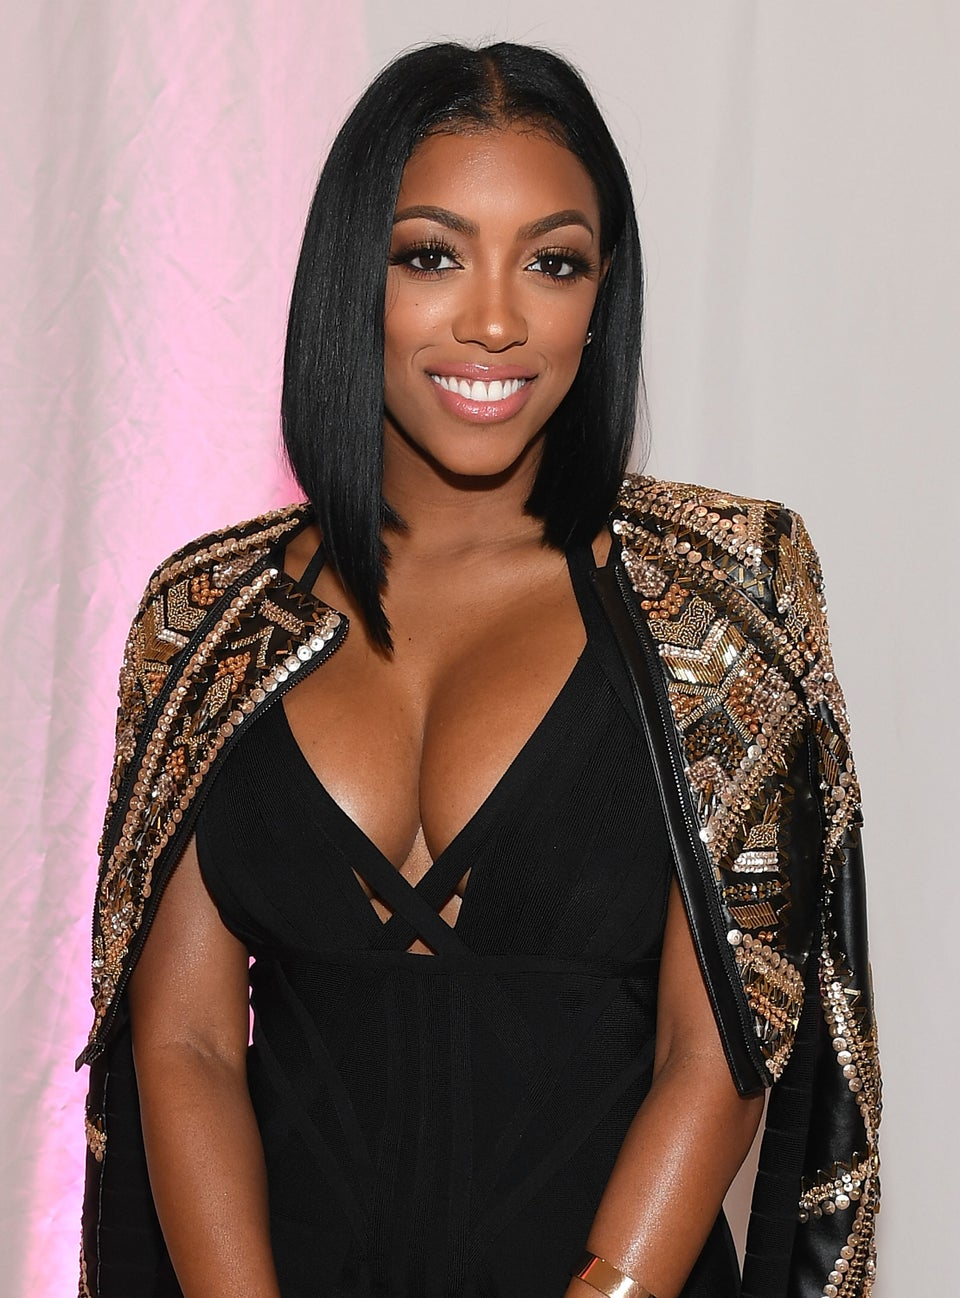 Porsha Williams On Her Unborn Daughter: 'I'm Really Connected To Her Now'